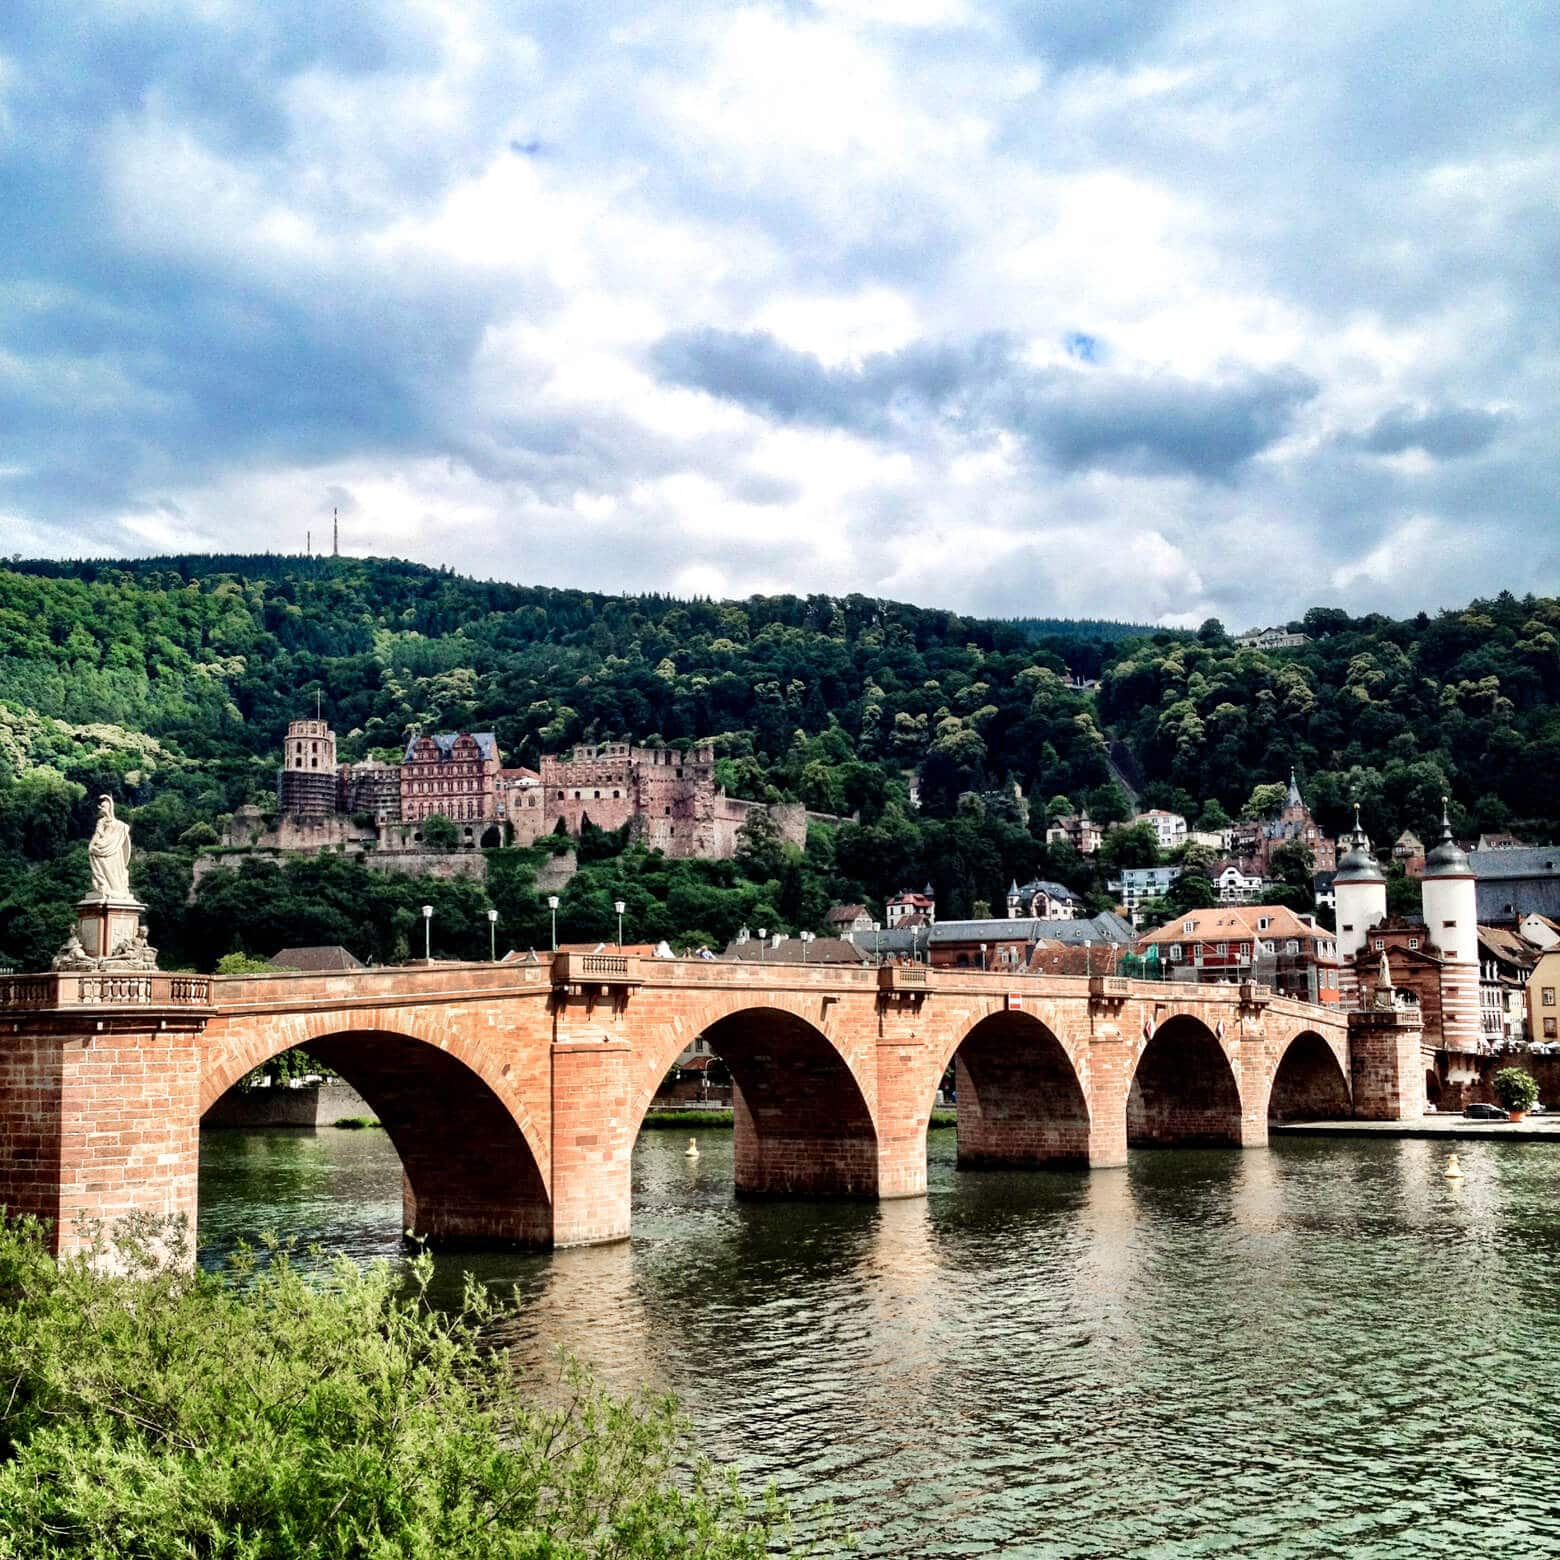 The Old Bridge in Heidelberg